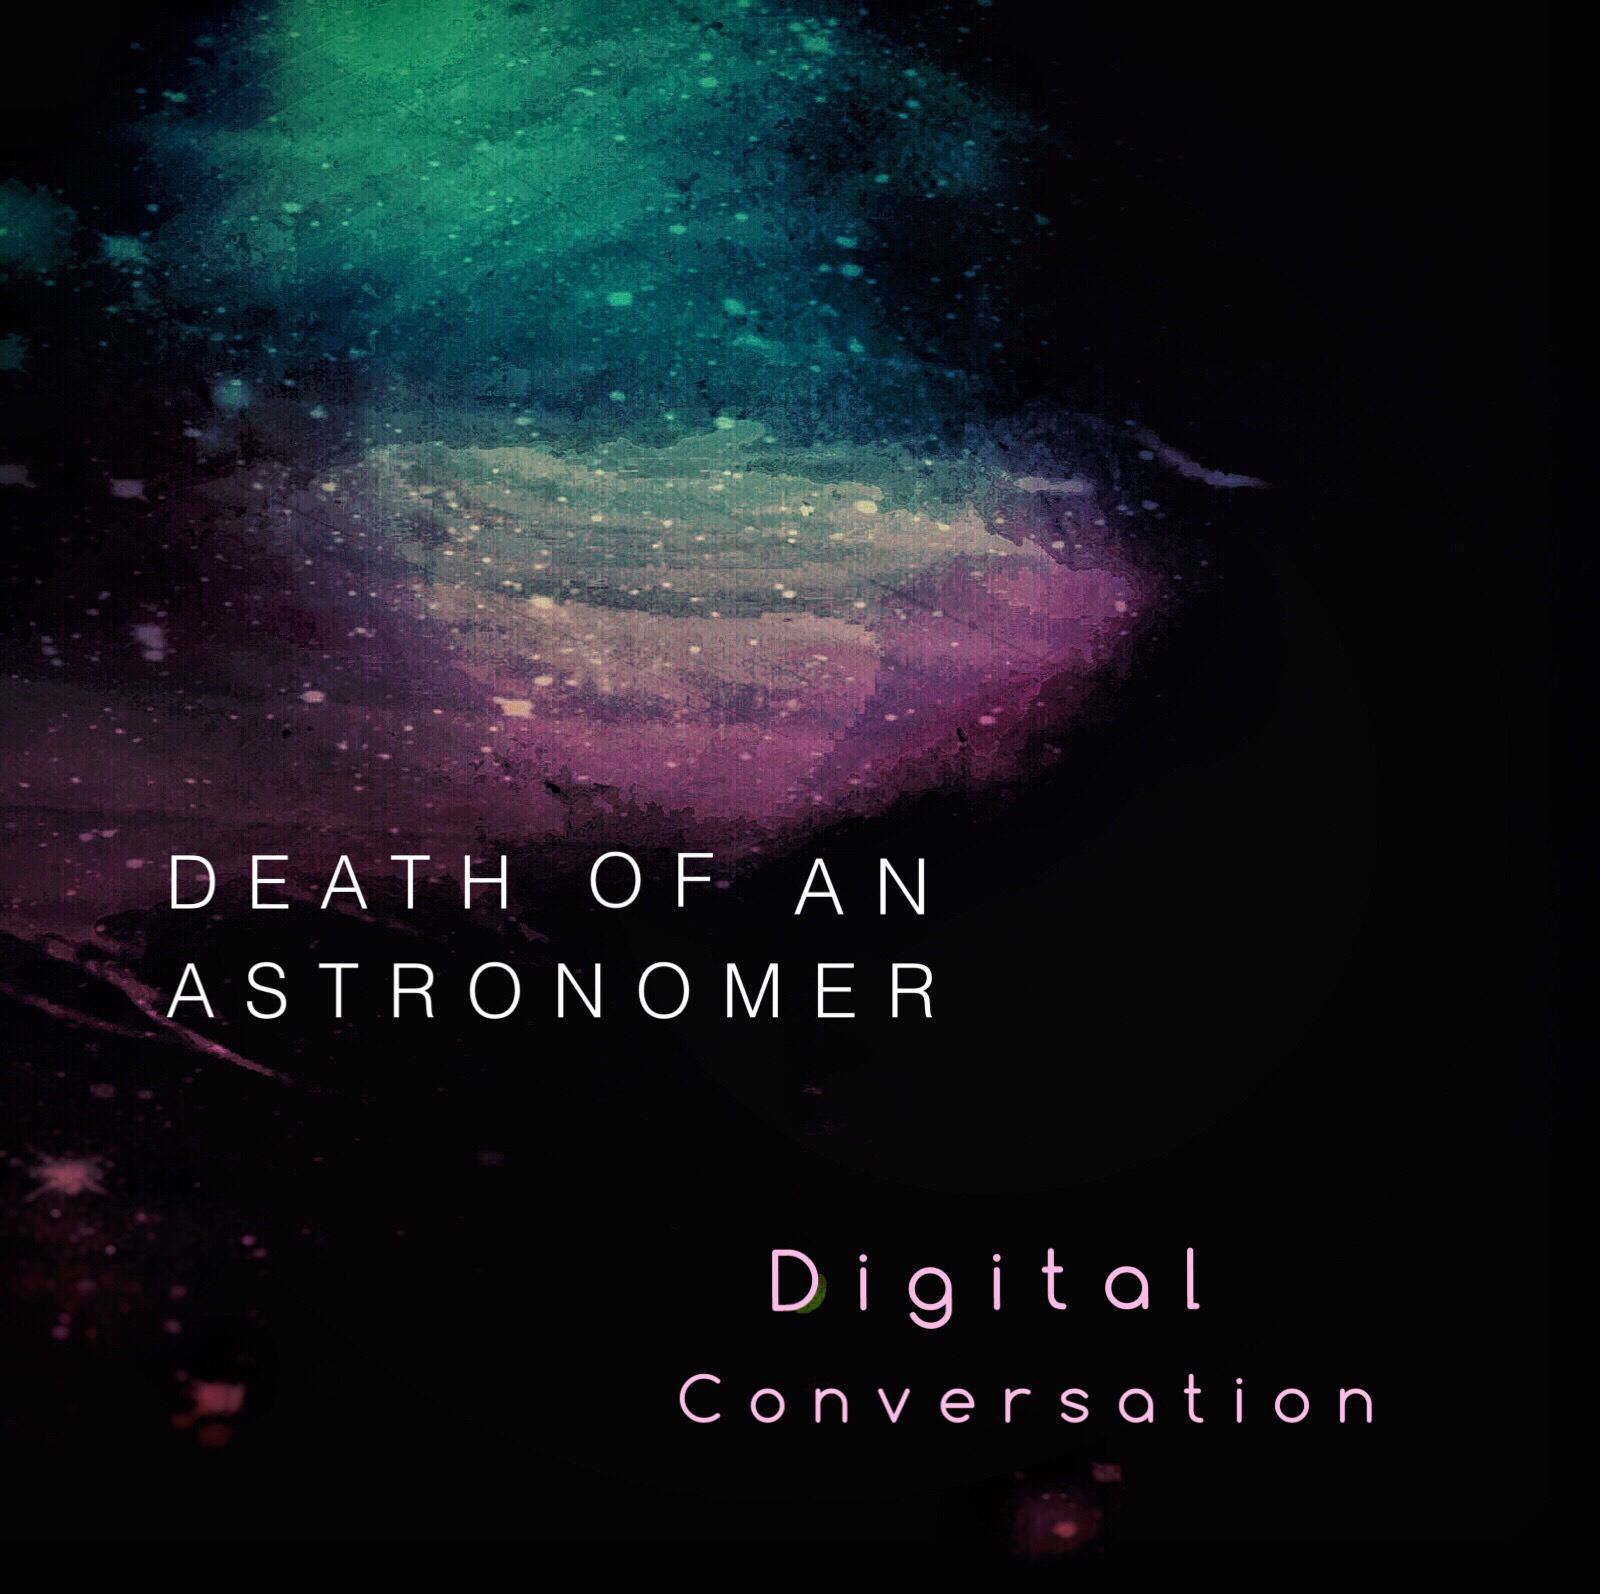 Digital Conversation